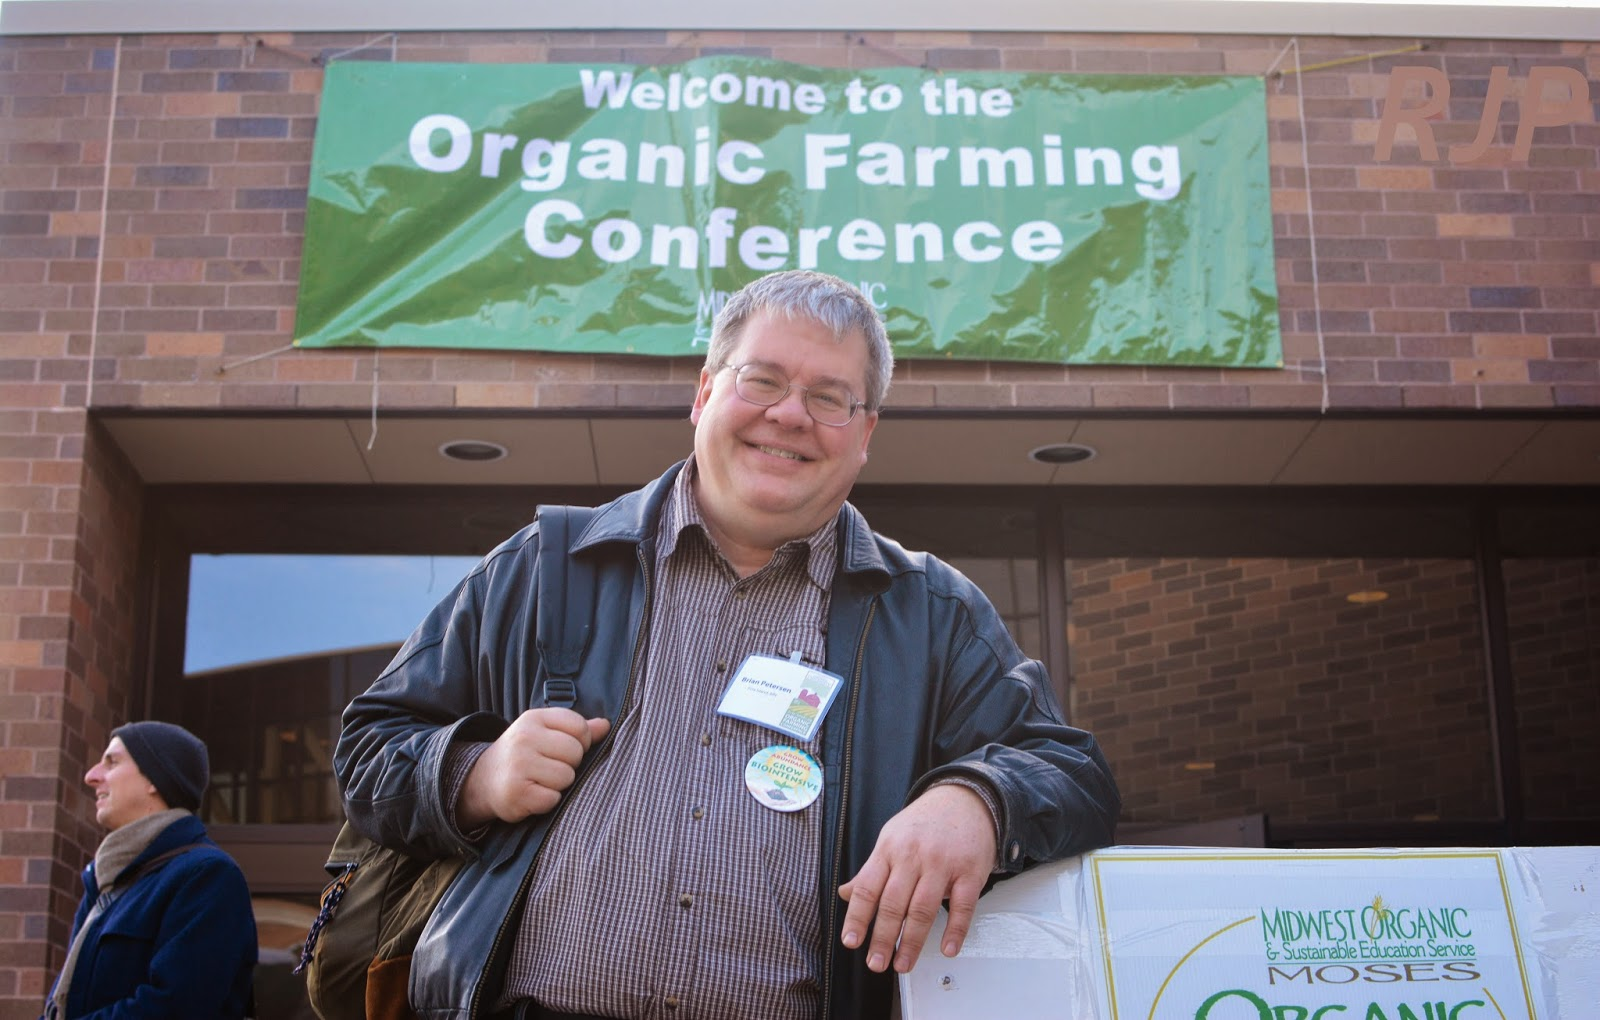 Brian in his happy place at the Organic Farming Conference. Credit: Reed Petersen